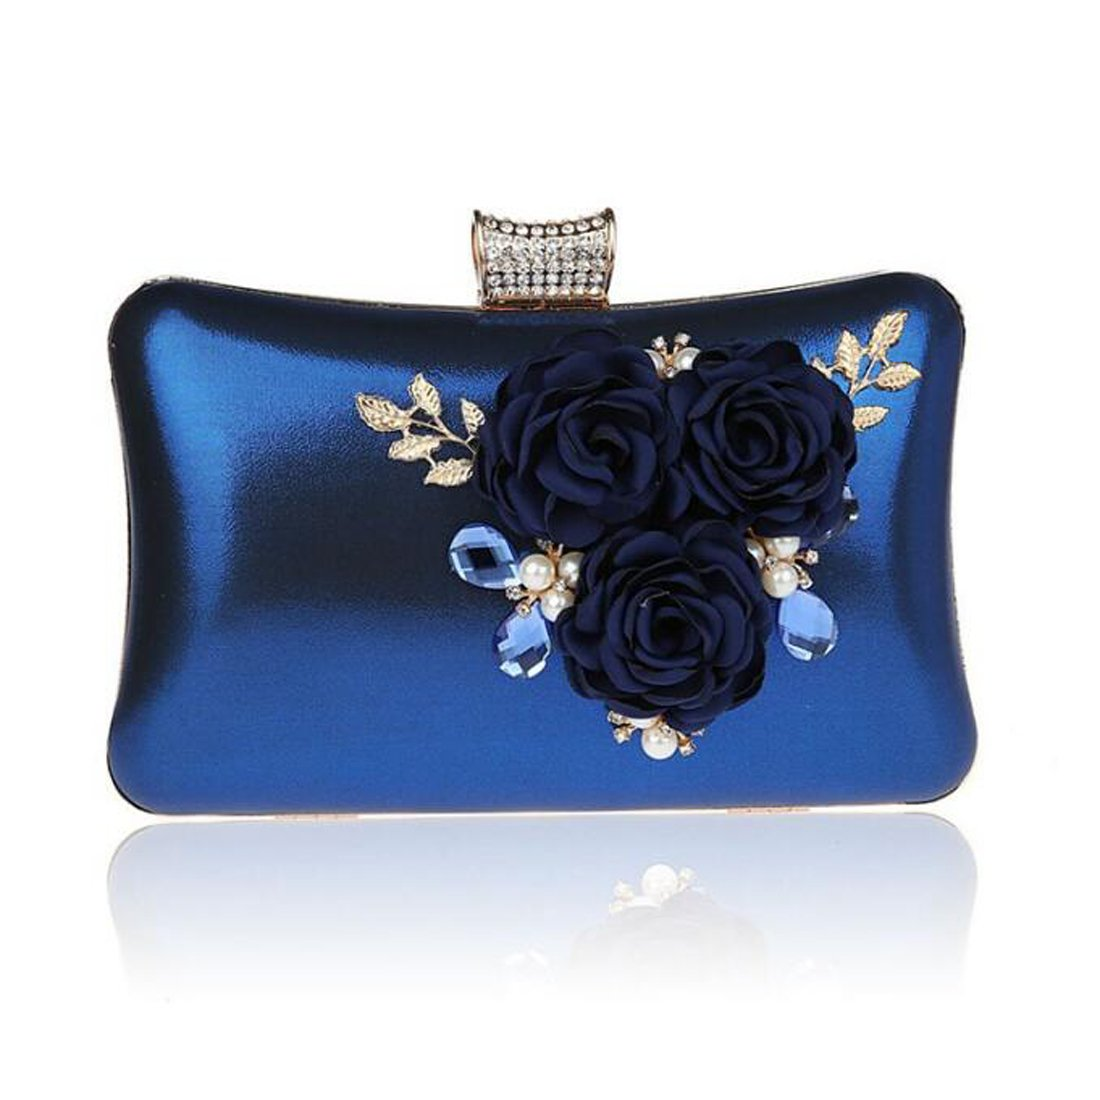 EPLAZA Women Large Capacity Flora Evening Clutch Bags Wedding Party Purse Handbags Wallet (blue)